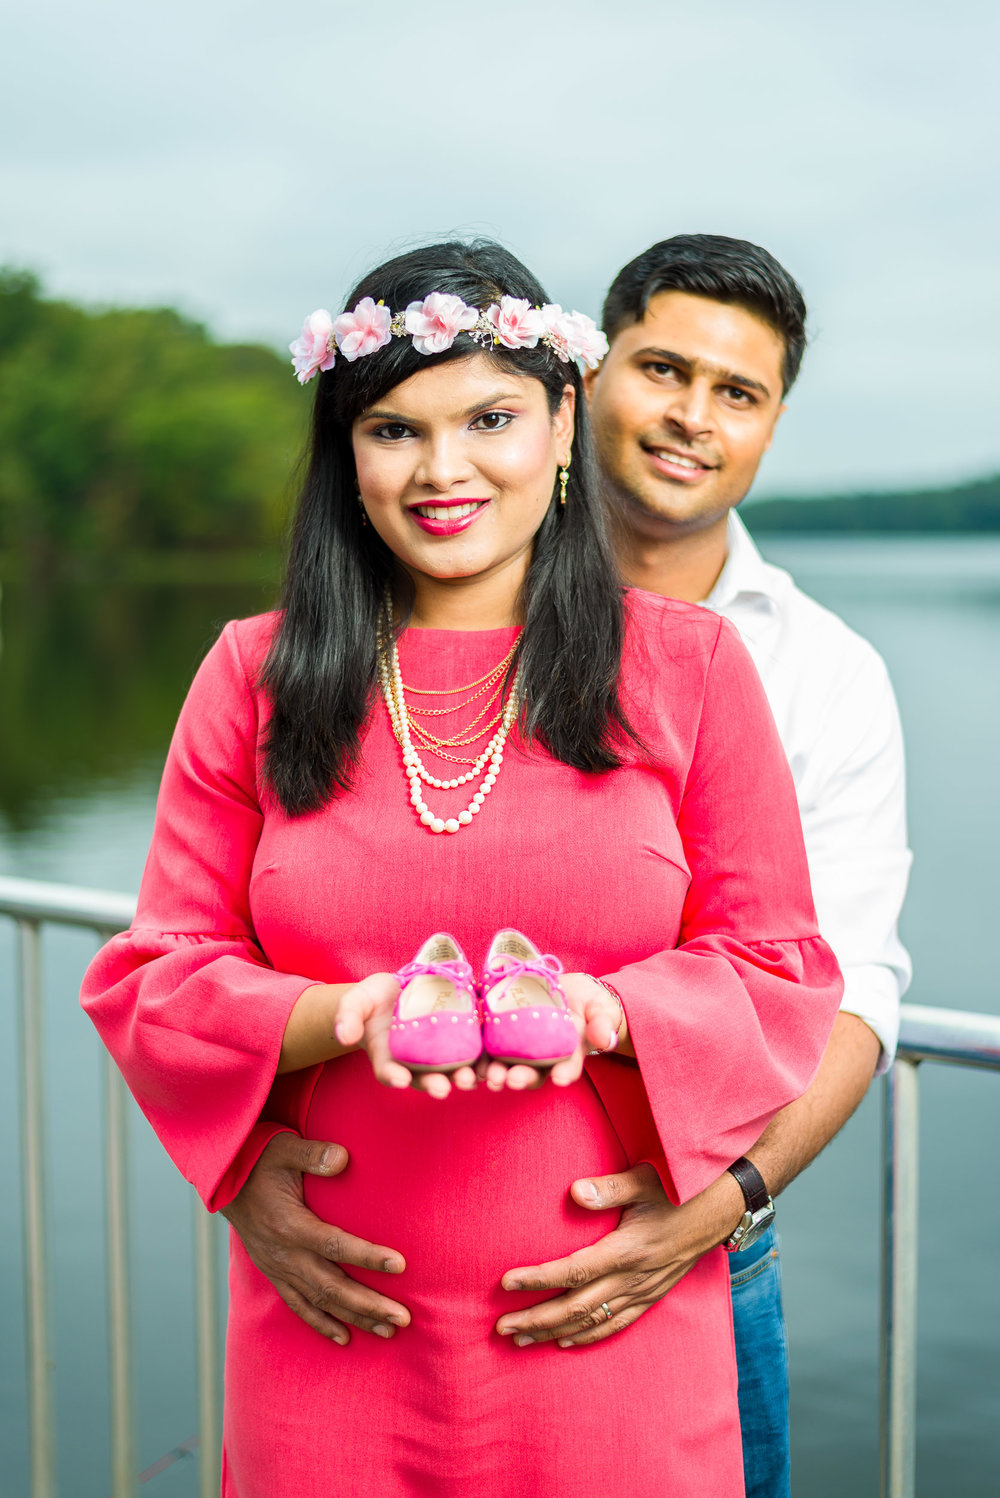 Maternity Portrait Headshot Photographer Fairfax VA